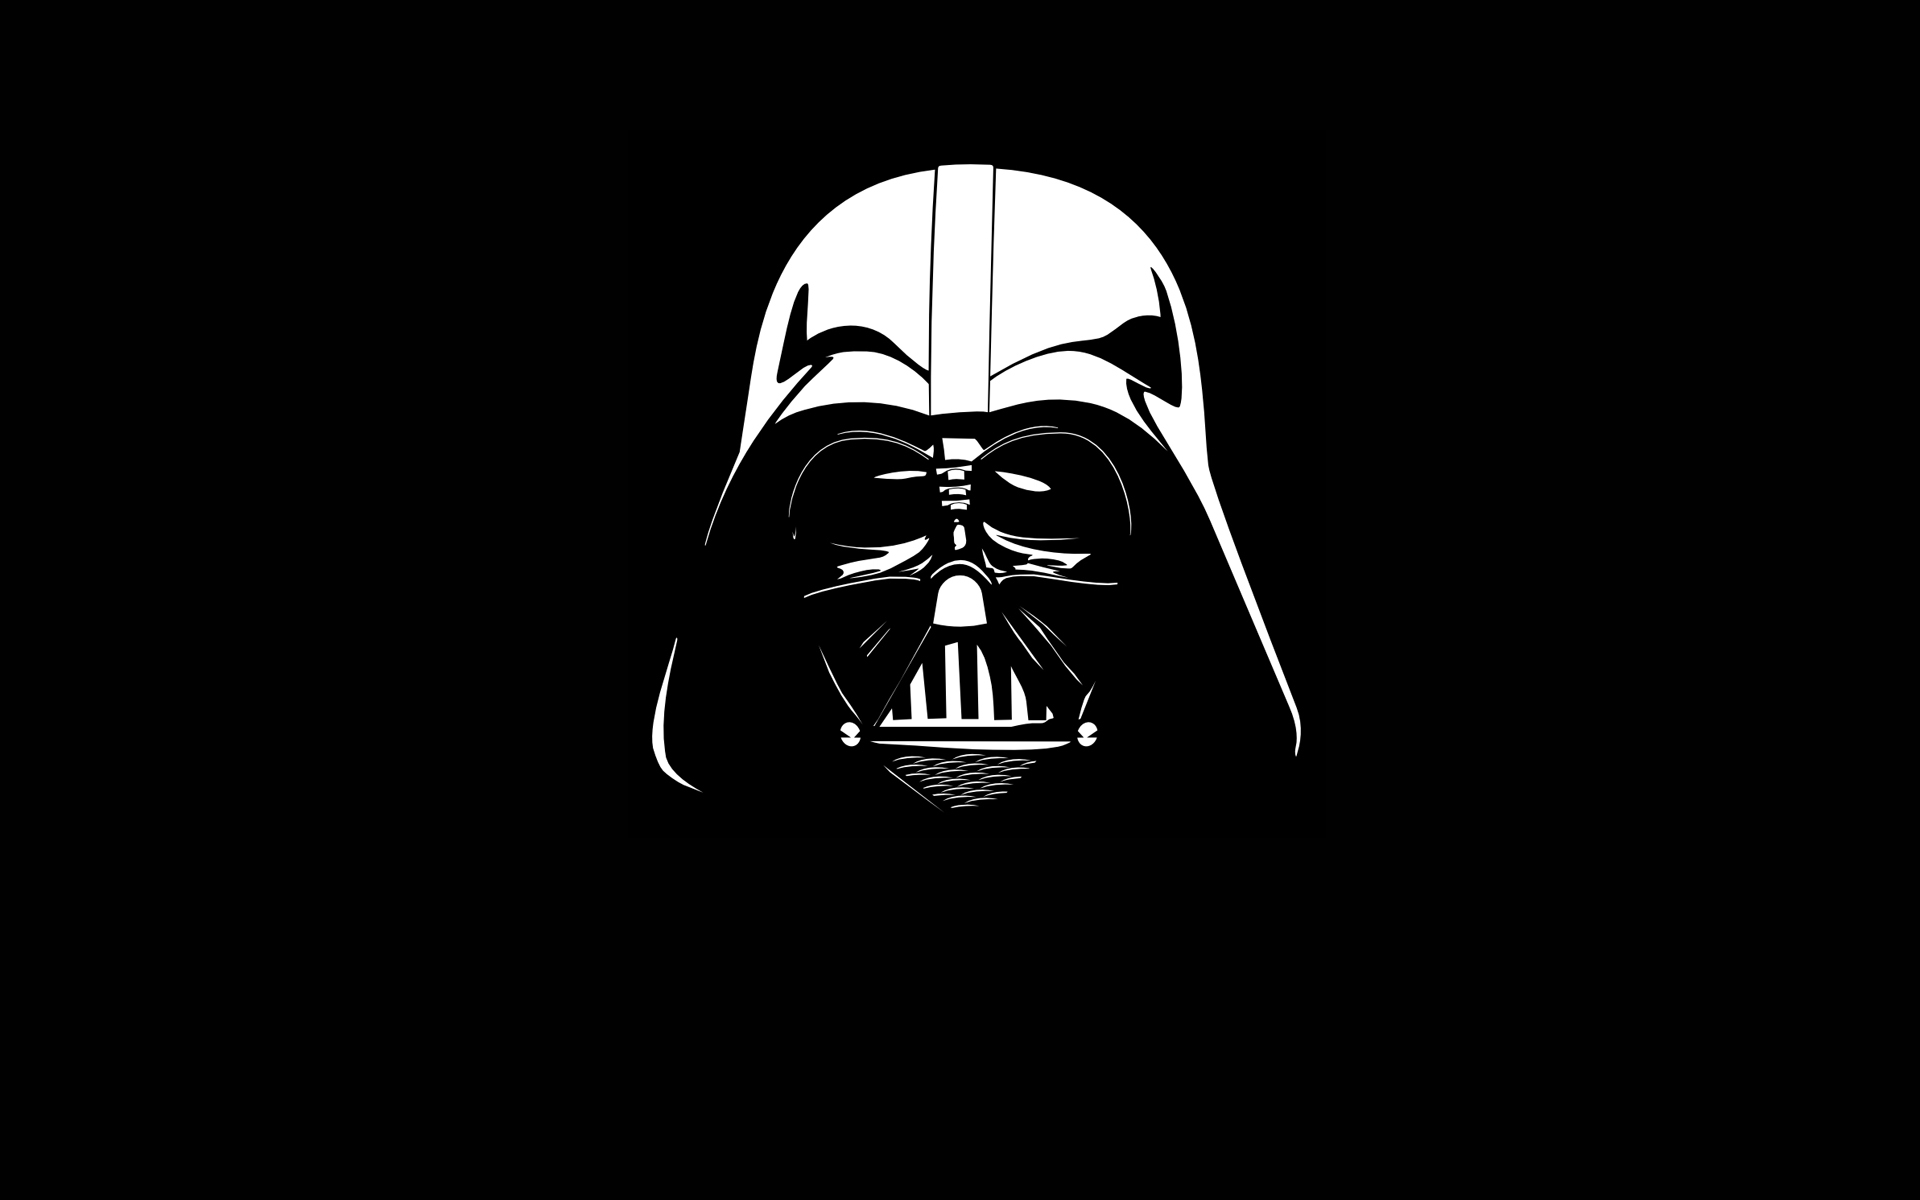 darth vader black and white wallpaper 567233